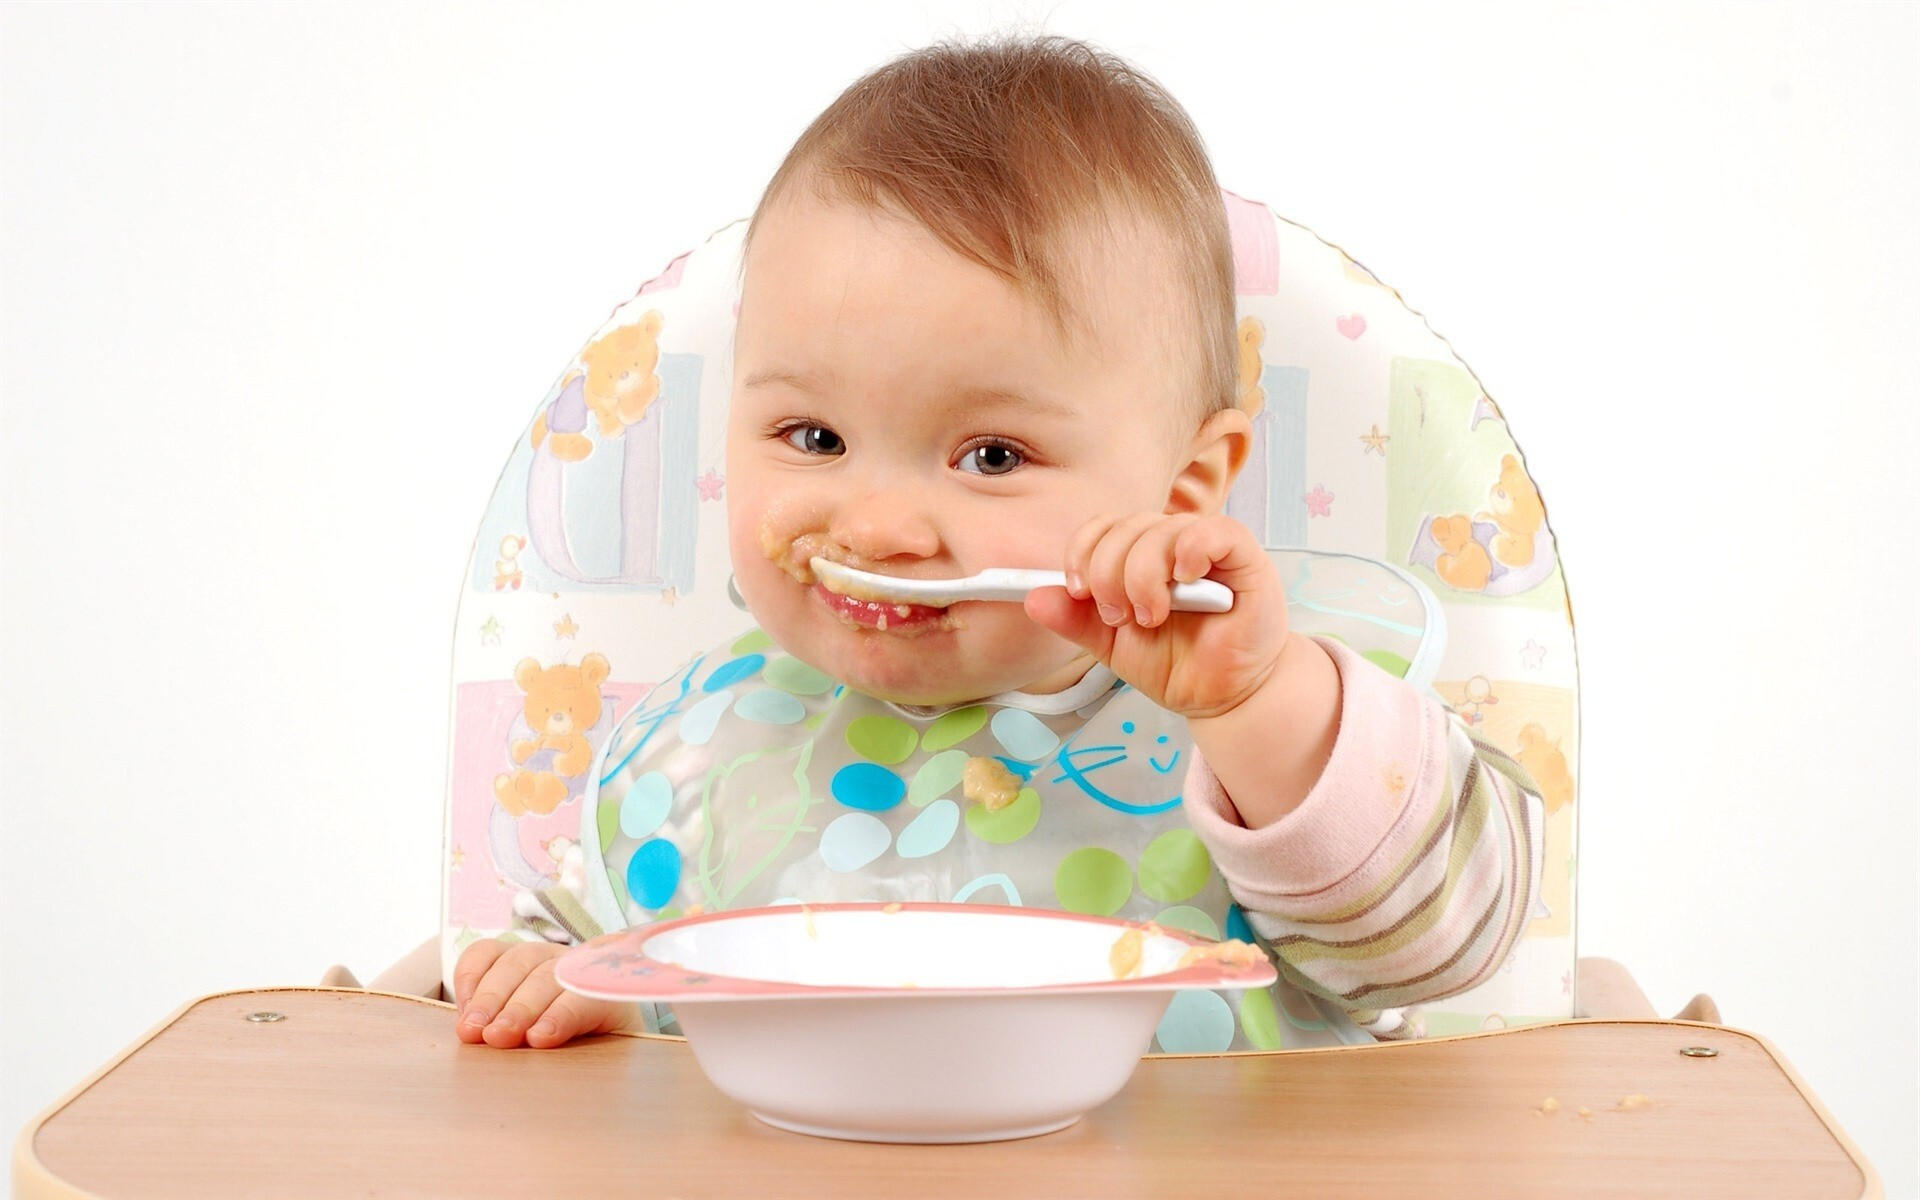 Cute baby eating hd wallpapers background hd wallpapers voltagebd Images